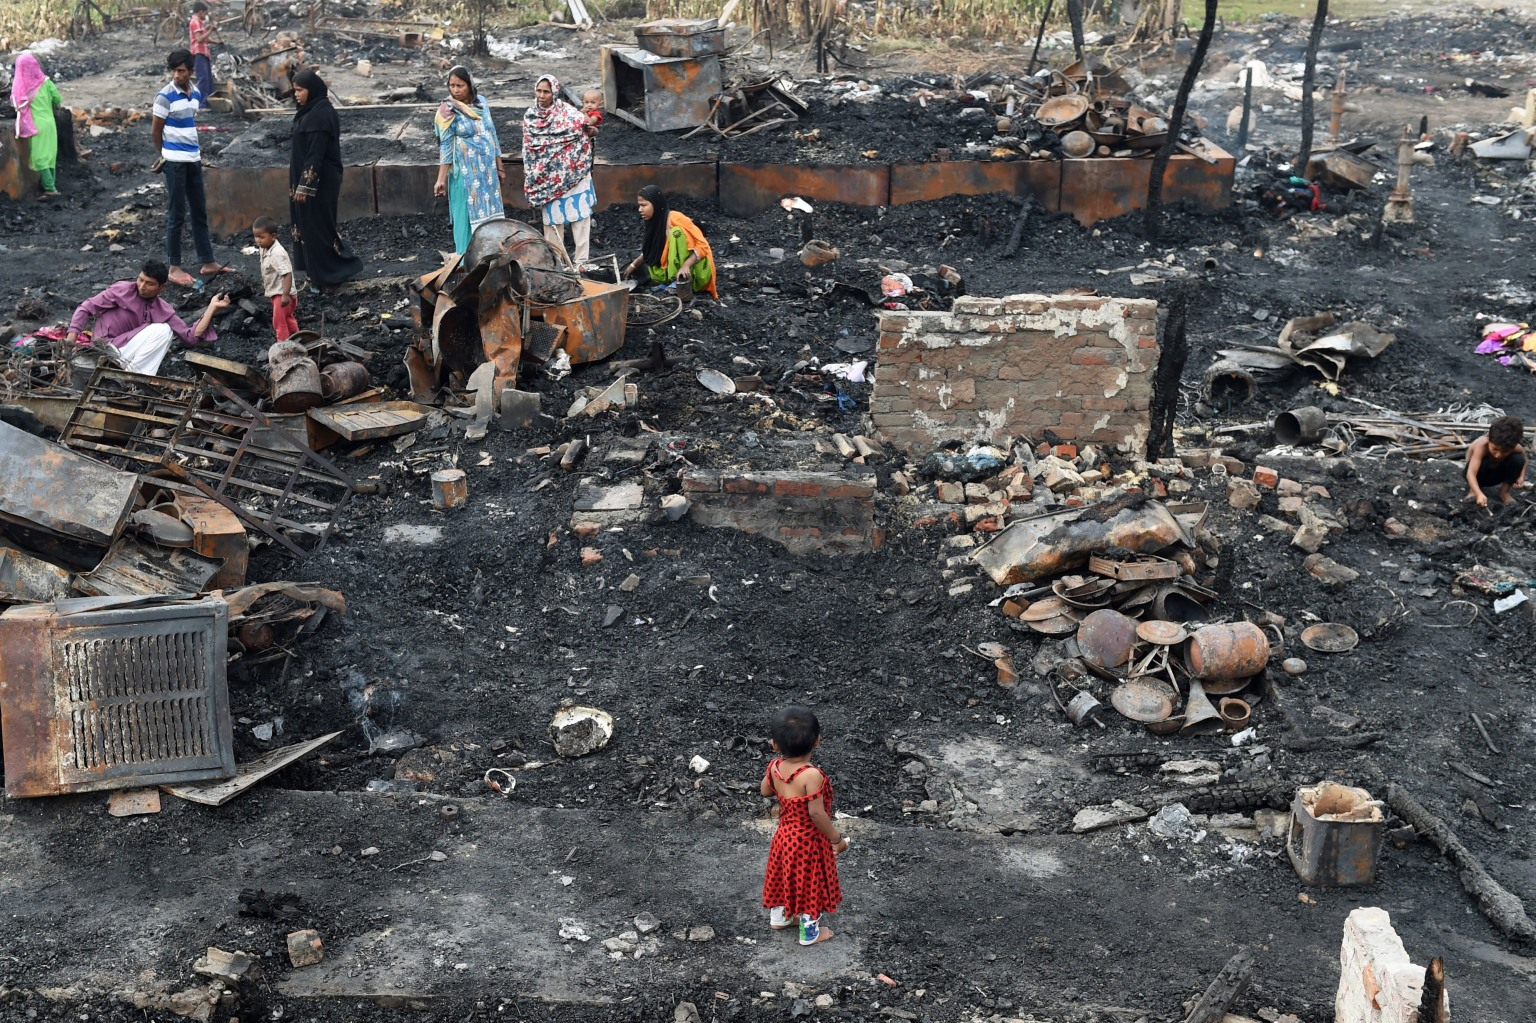 Rohingya refugees look for their belongings in New Delhi on April 16 following a fire that broke out at their camp, leaving around 200 people homeless. The refugees fled persecution in Myanmar, with their numbers increasing following a brutal crackdown in September 2017 that saw hundreds of thousands pouring into neighbouring Bangladesh. MONEY SHARMA/AFP/Getty Images